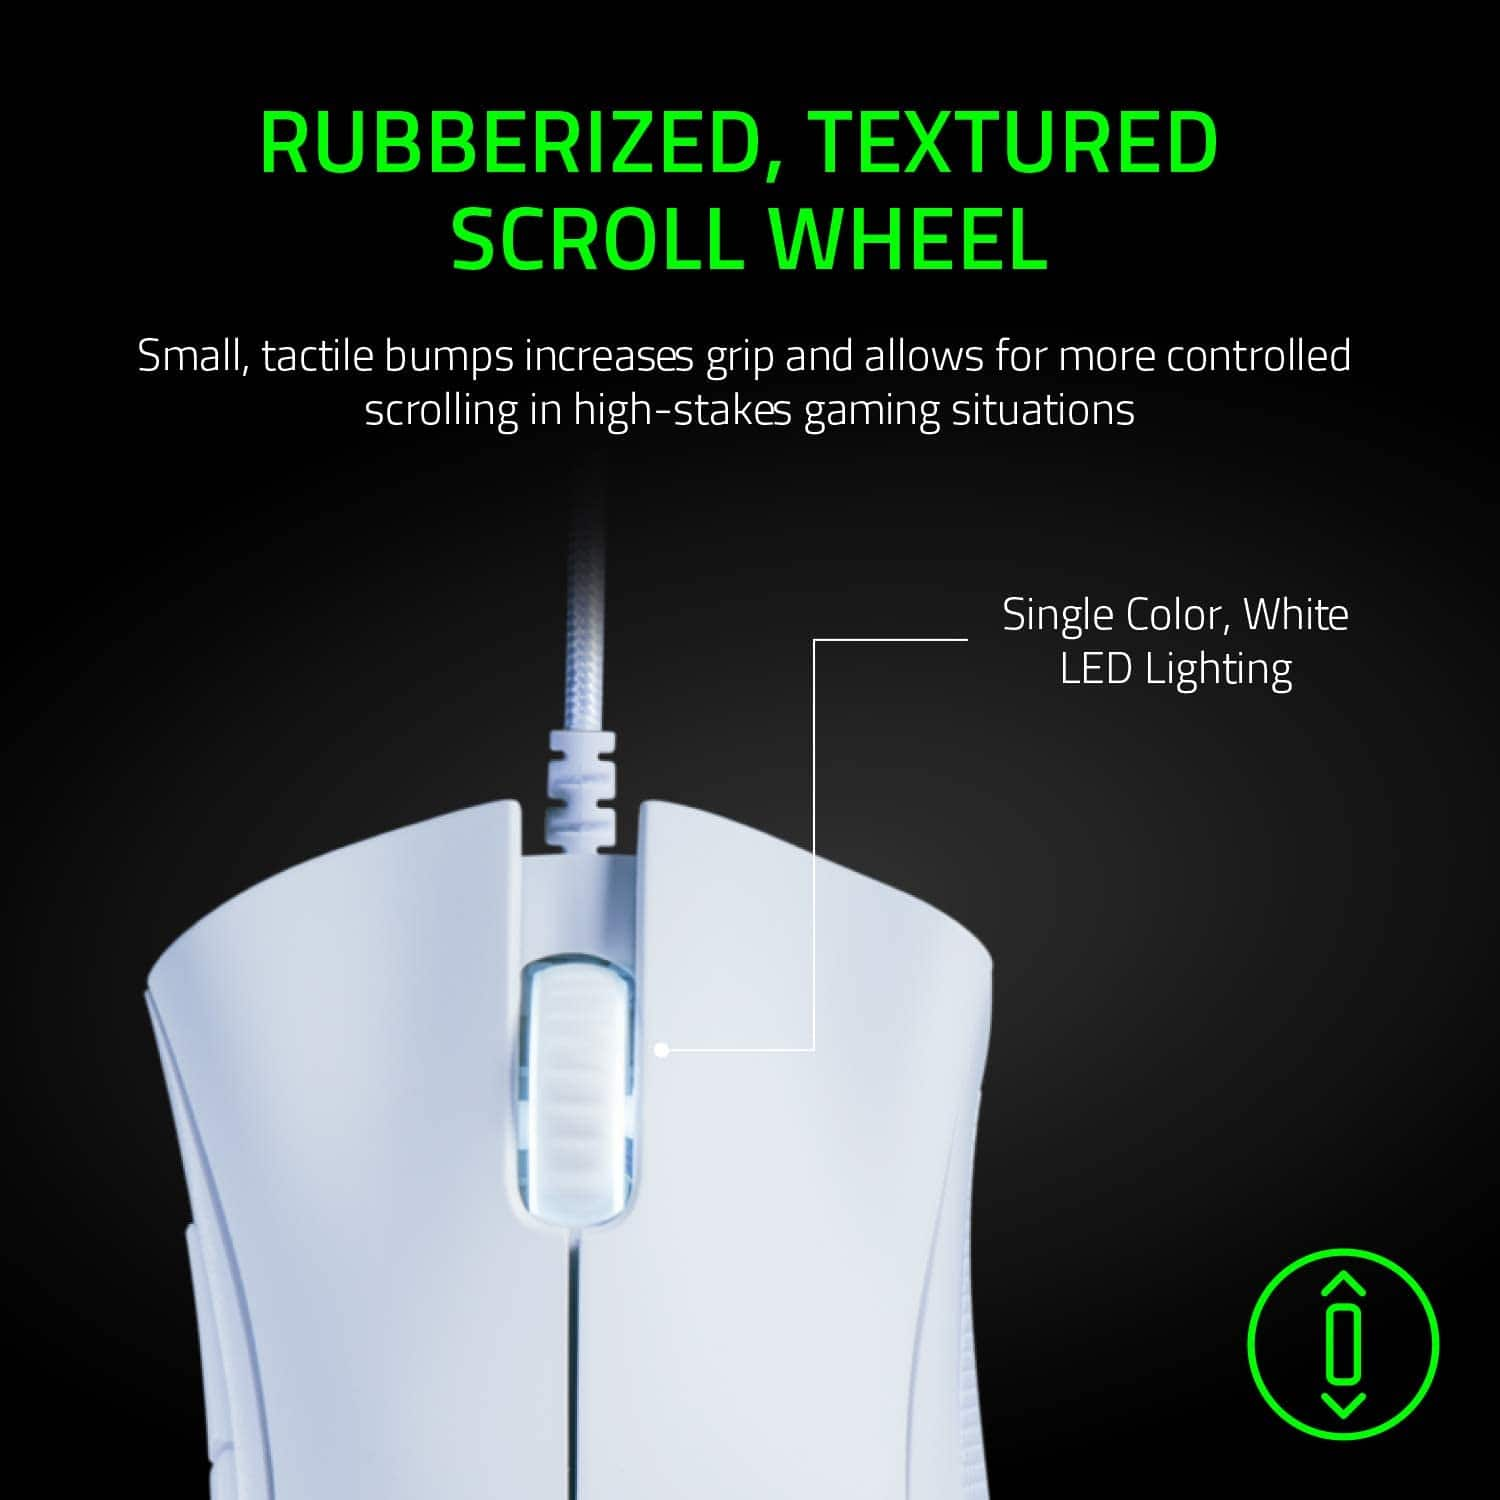 Razer DeathAdder Essential Gaming Mouse: 6400 DPI Optical Sensor - 5 Programmable Buttons - Mechanical Switches - Rubber Side Grips - White $23.99